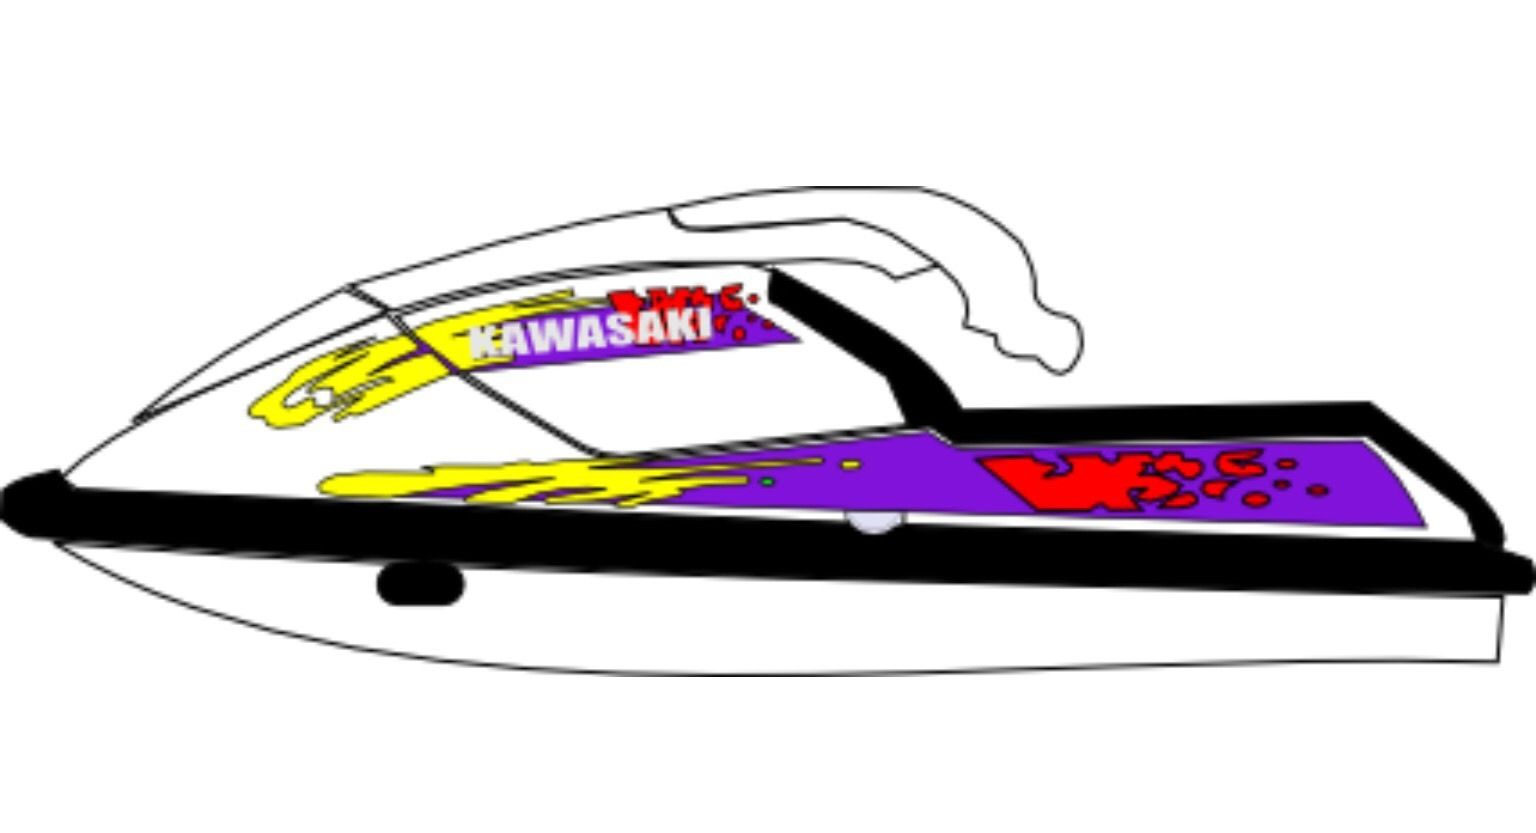 1536x833 Kawasaki 650sx Jet Ski Decals Graphics Sticker Vinyl Kit